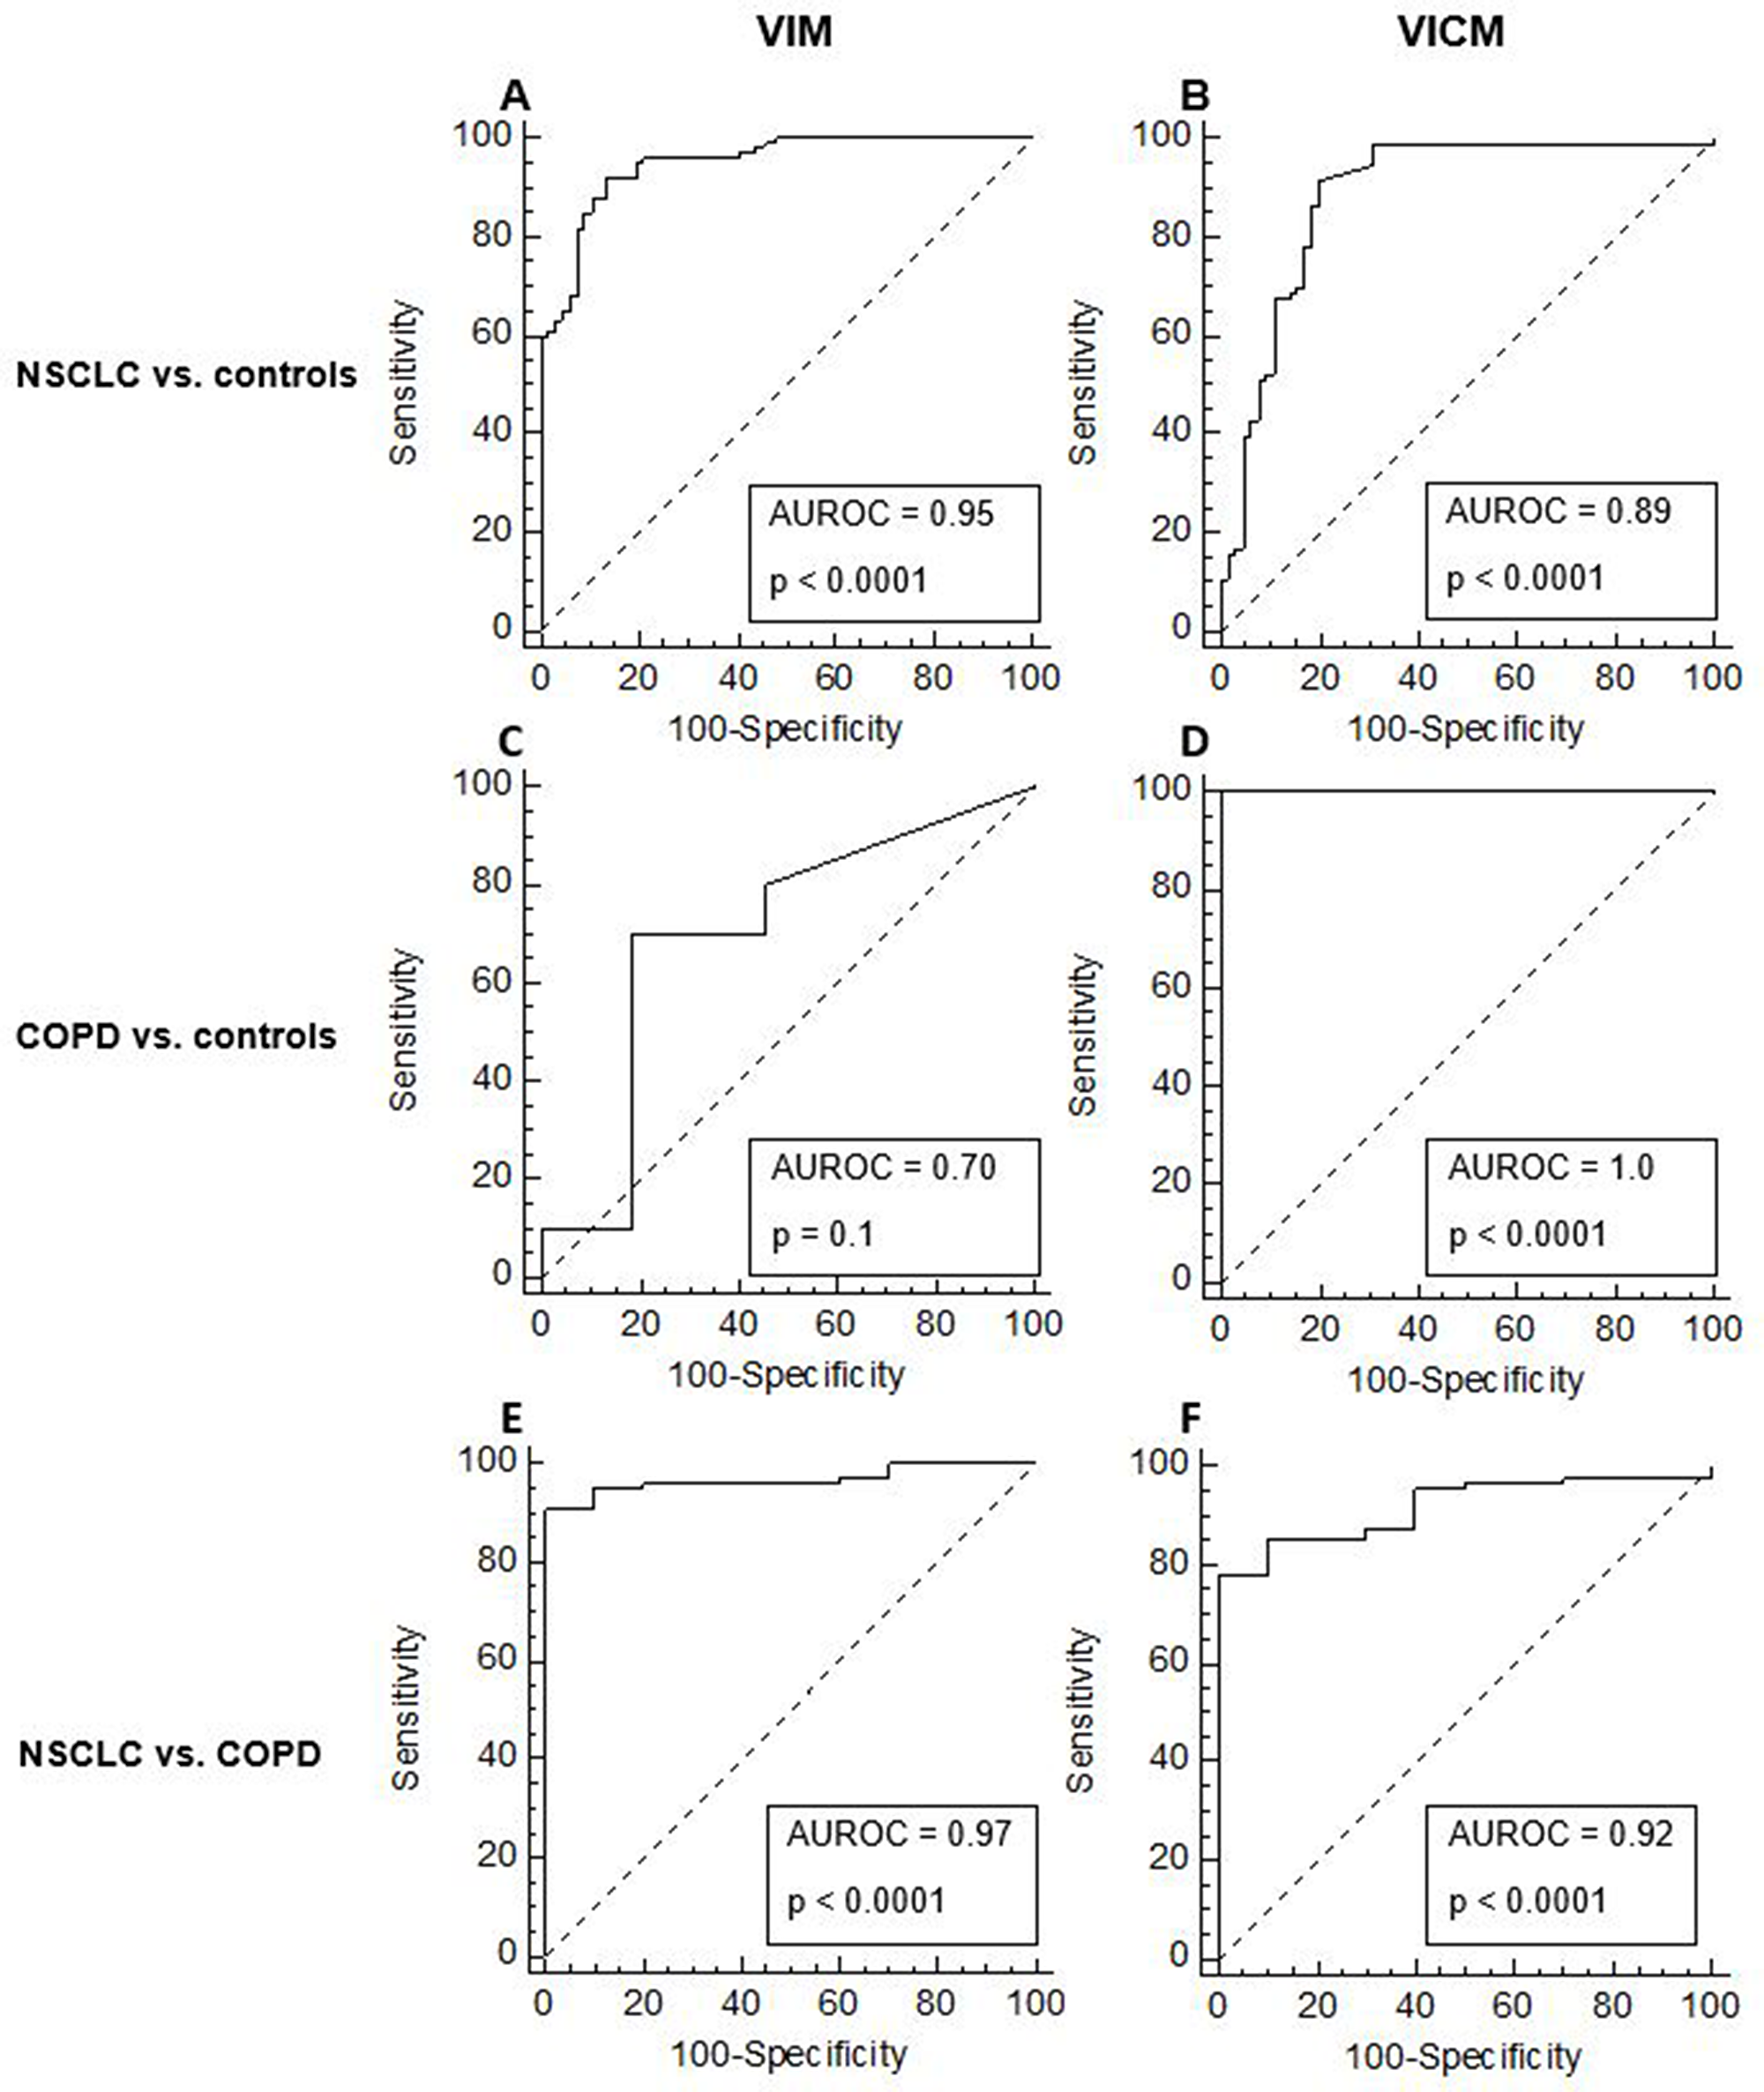 Diagnostic power of MMP-degraded vimentin (VIM) and MMP-degraded and citrullinated vimentin (VICM) for separating non-small cell lung cancer (NSCLC) and chronic obstructive pulmonary disease (COPD) from healthy controls.